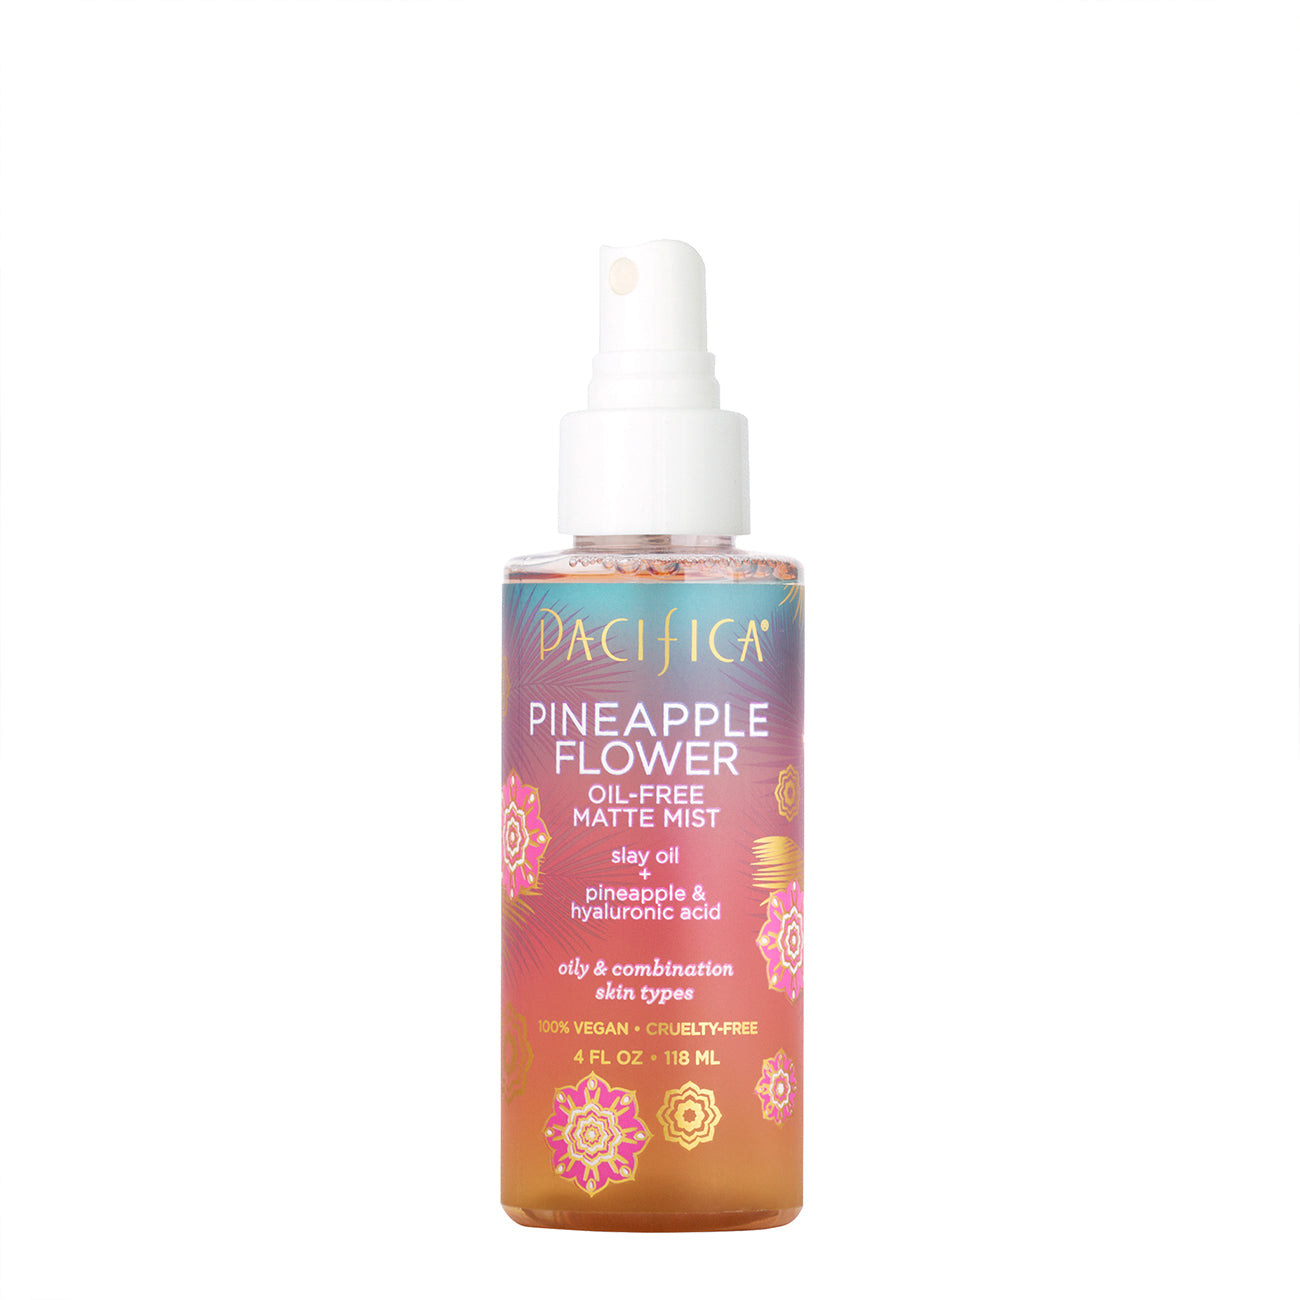 Pineapple Flower Oil-Free Matte Mist